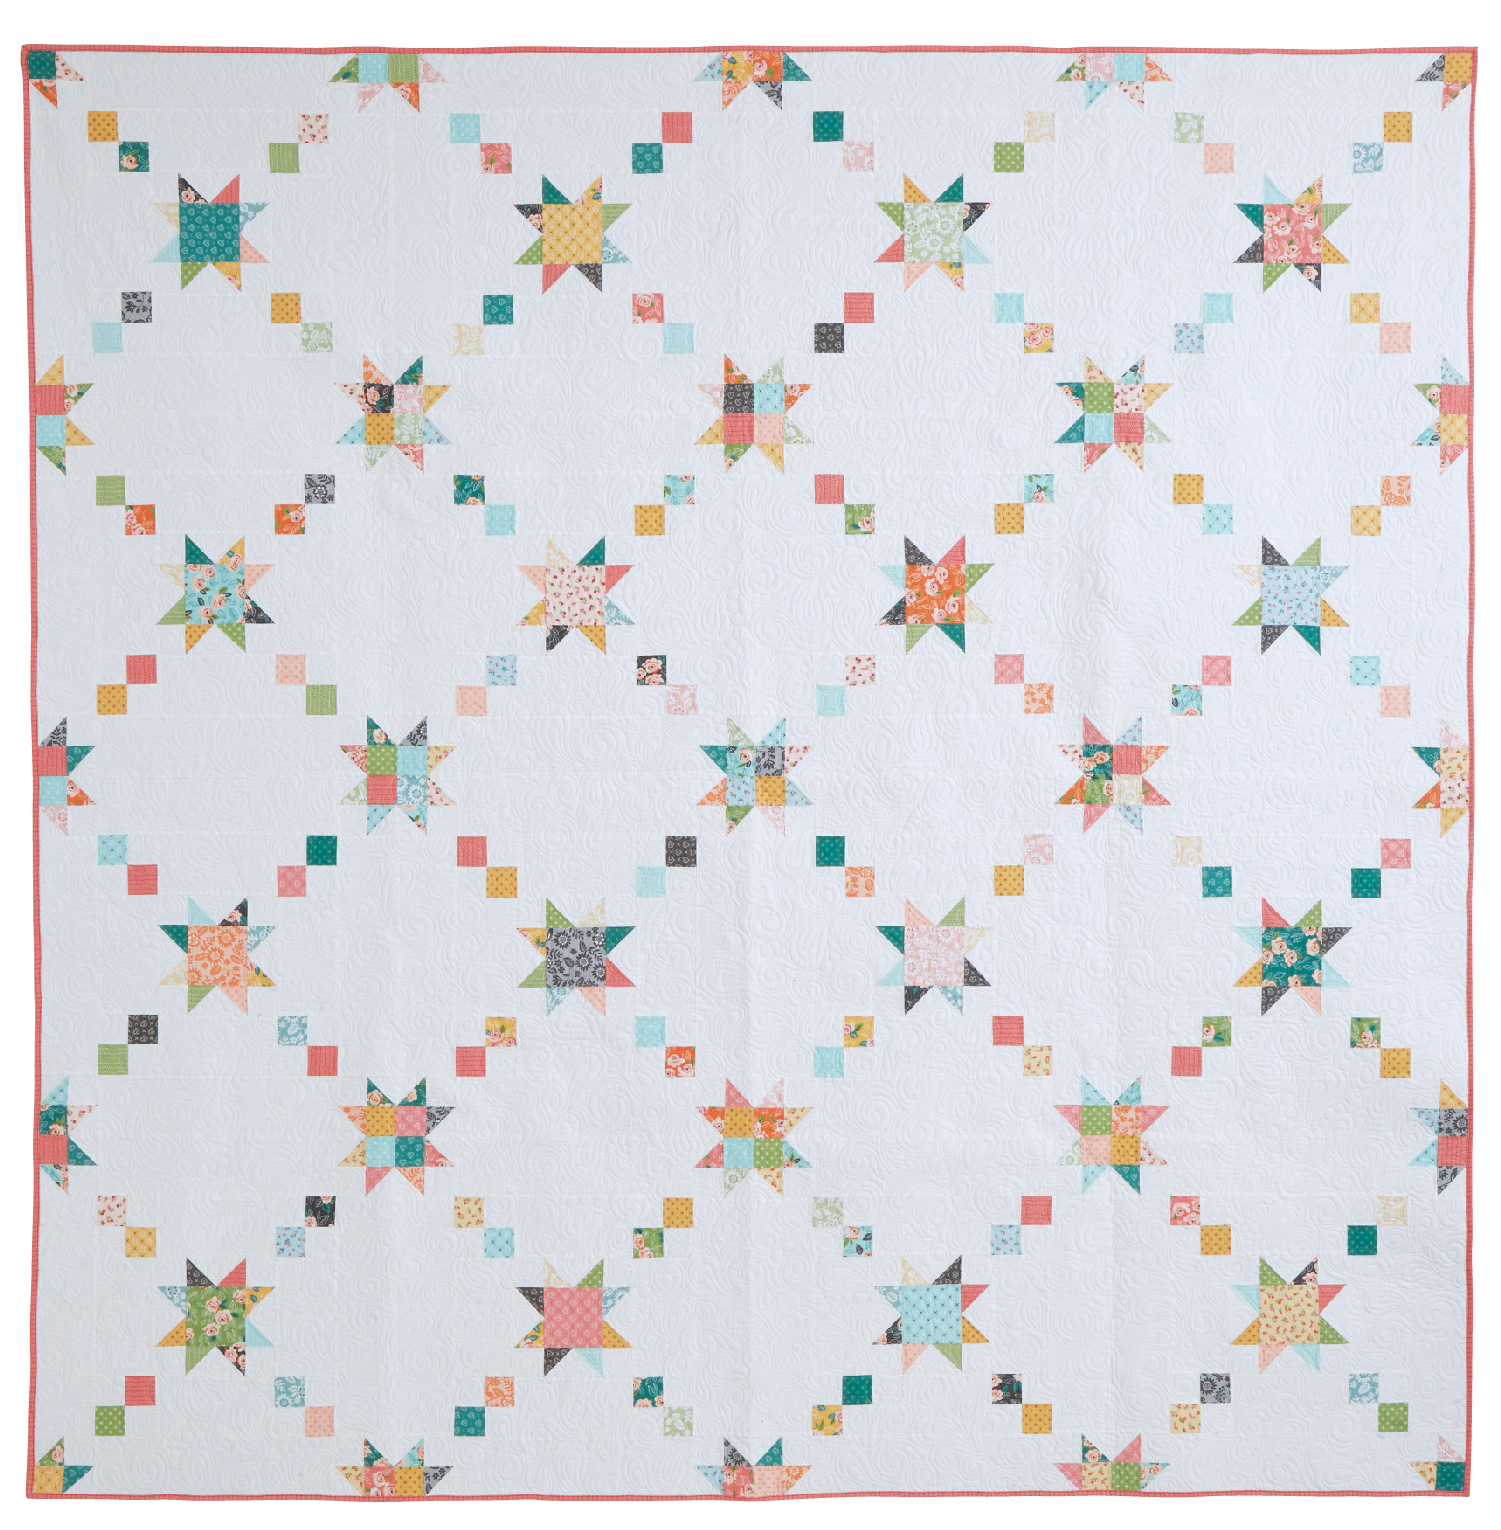 Happy Quilting: Star Crossed - Featured in McCalls Quilting!! : mccalls quilting - Adamdwight.com